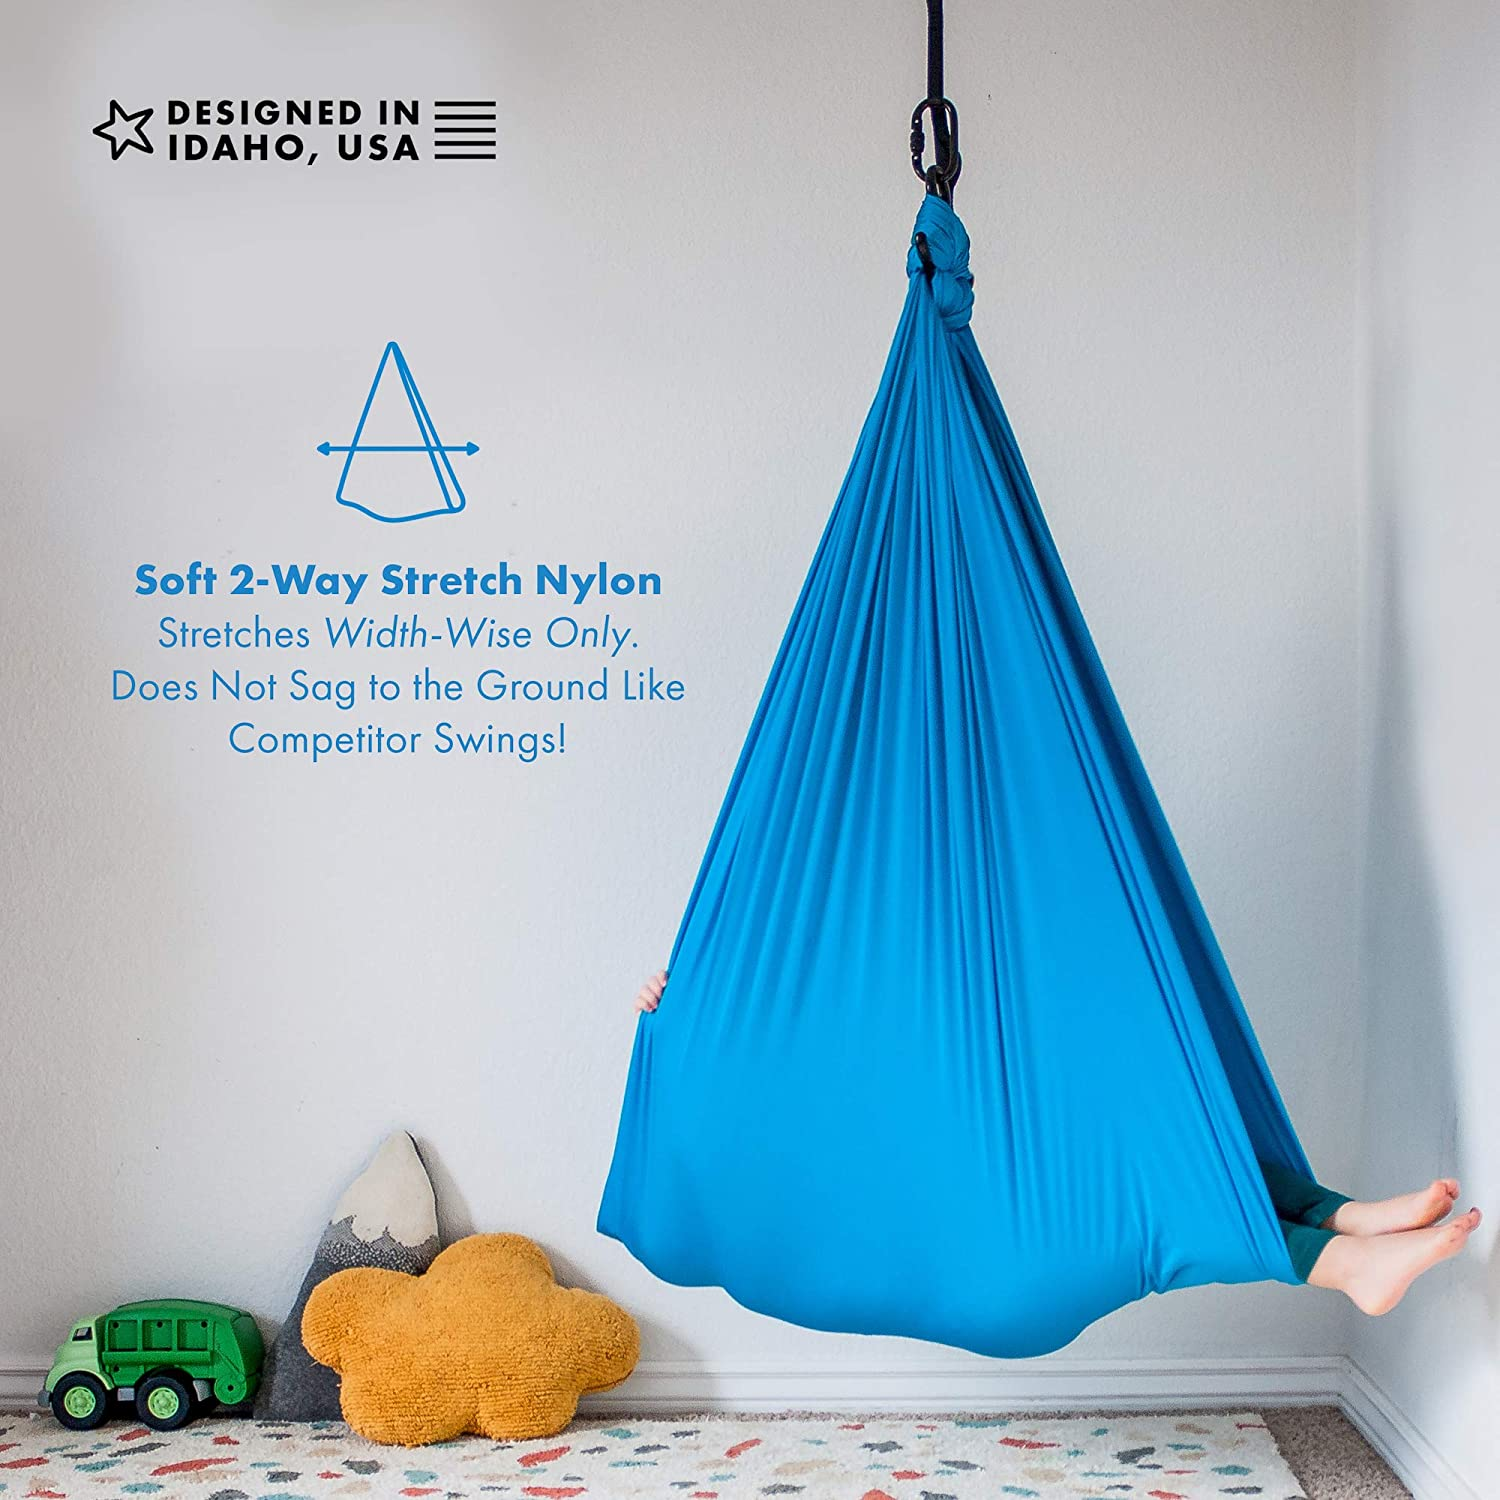 Blue Aspergers Syndrome and SPD Hardware Included with Special Needs,Snuggle Hanging Cuddle Hammock for Autism ADHD Sensory Swing for Children AVAH Indoor Therapy Swing for Kids /& Adults